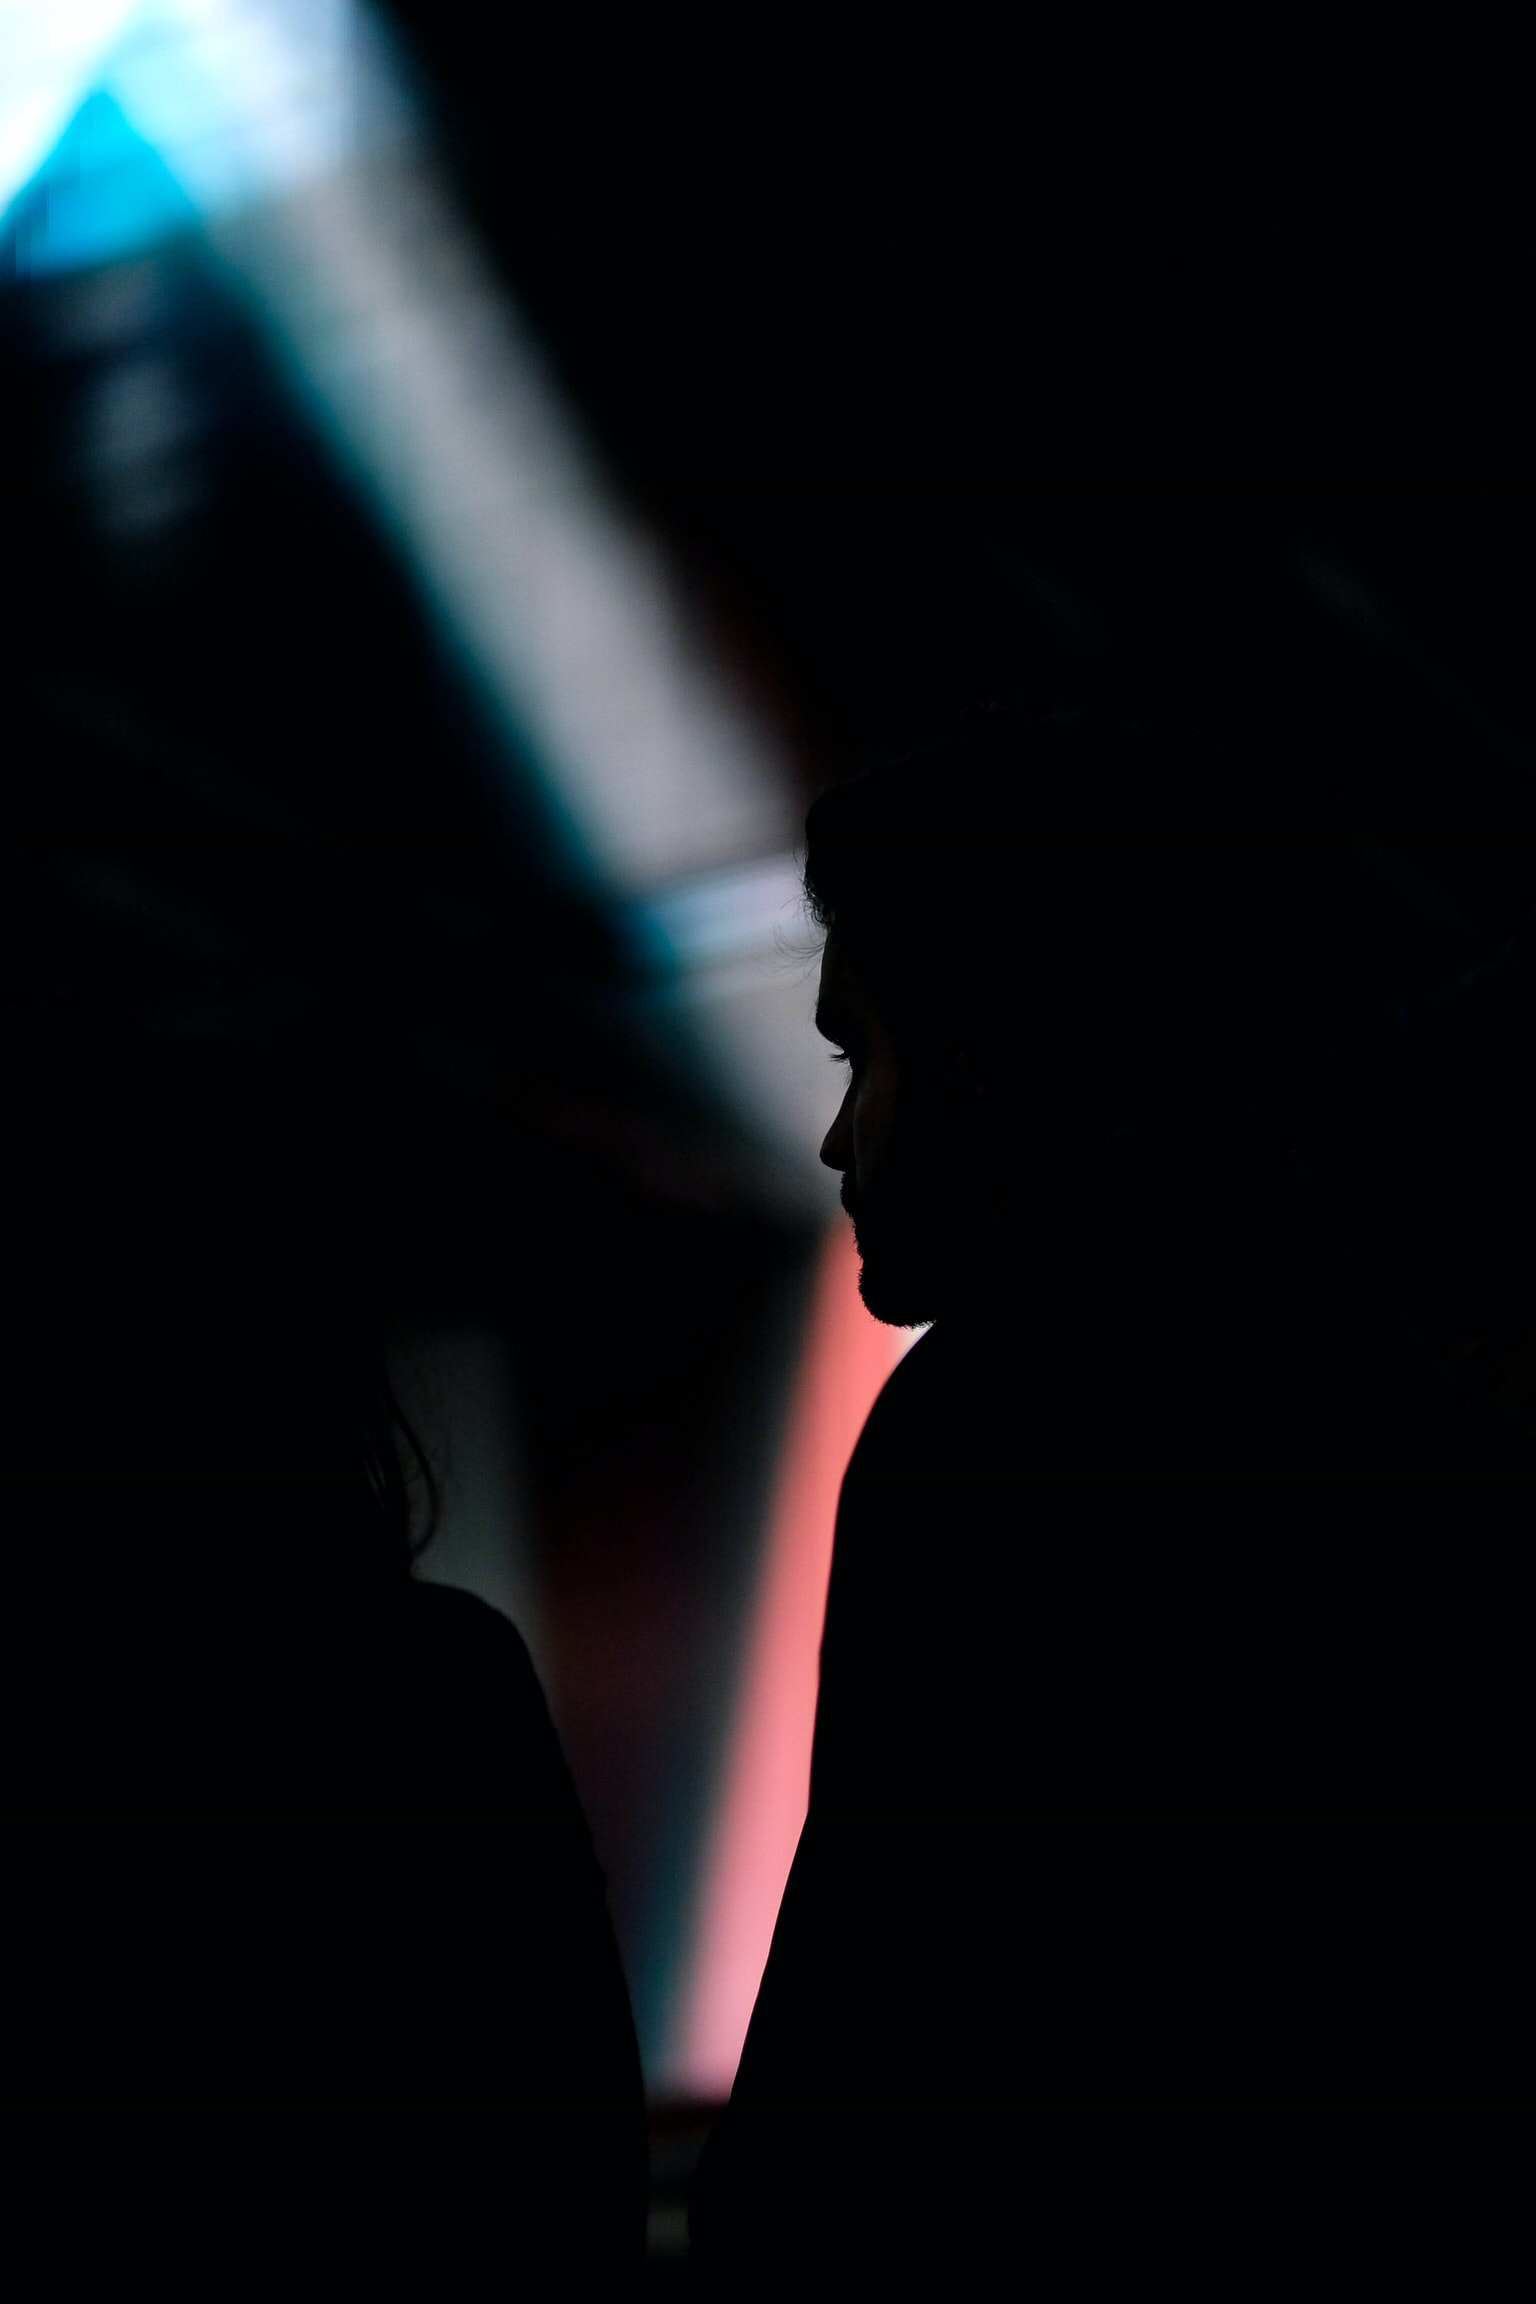 silhouette of two person